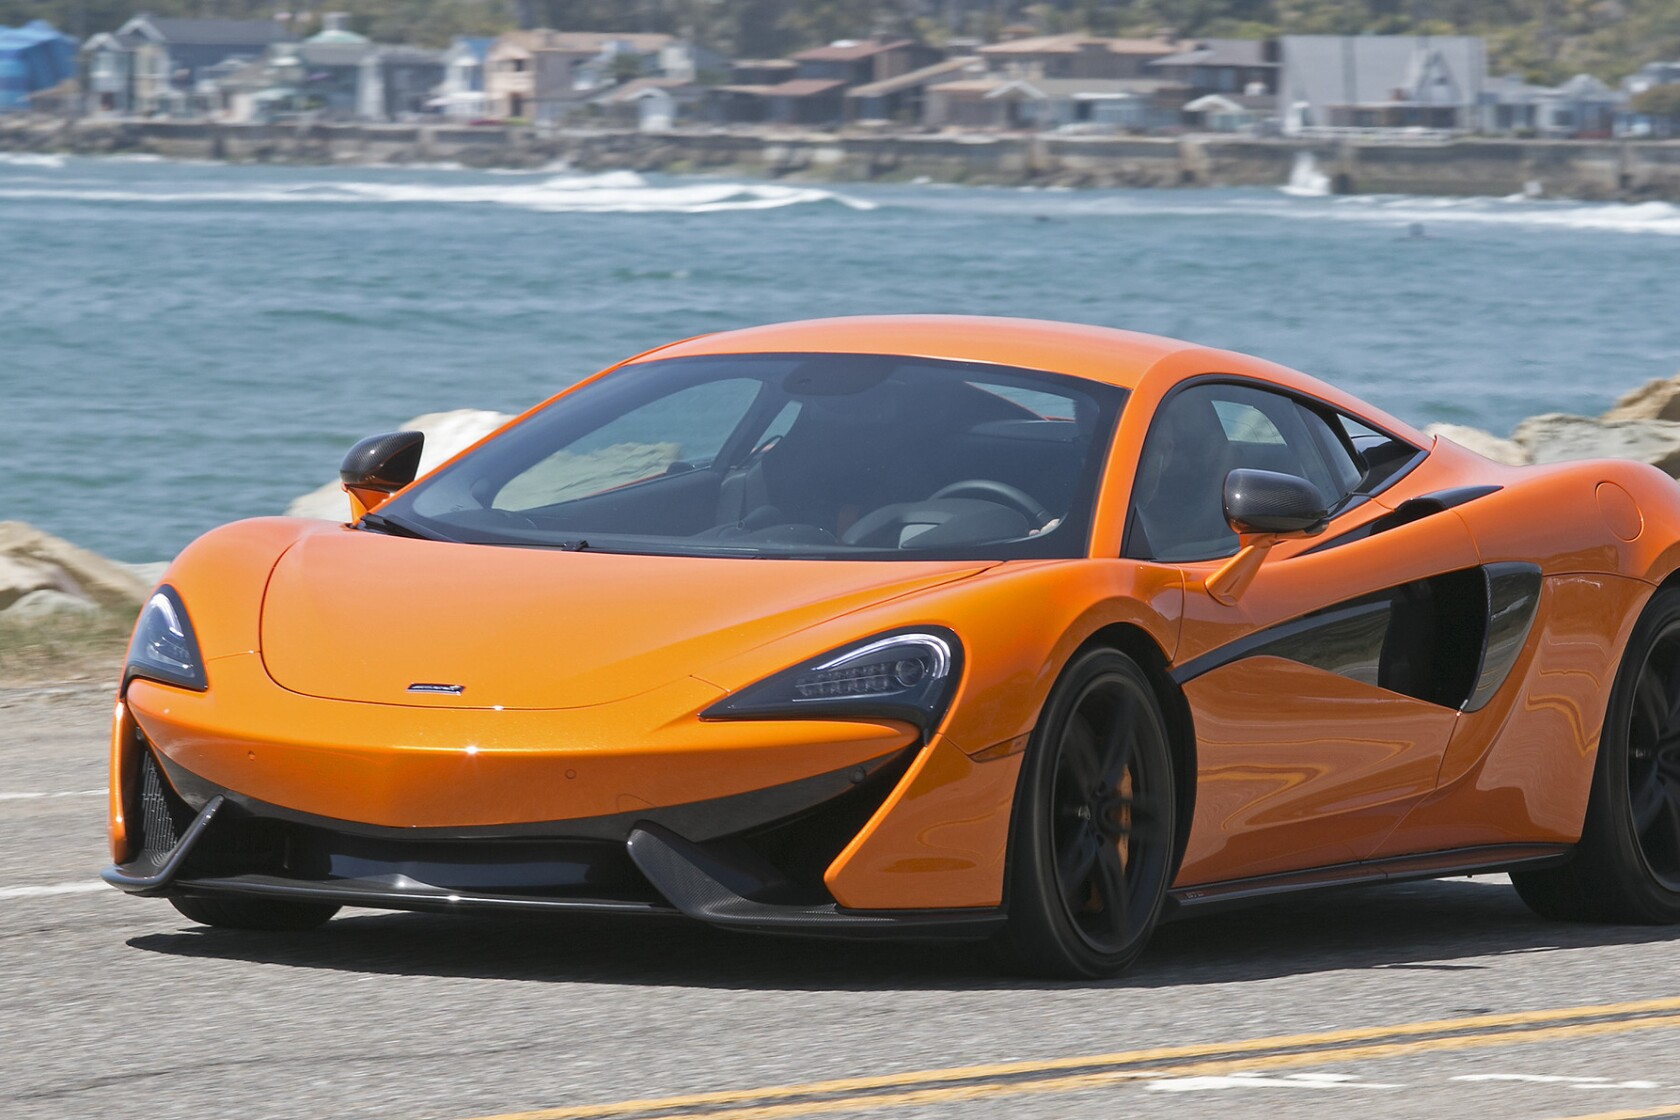 Mclaren P1 Cost >> Mclaren Builds A Car For The Masses With A 200 000 Price